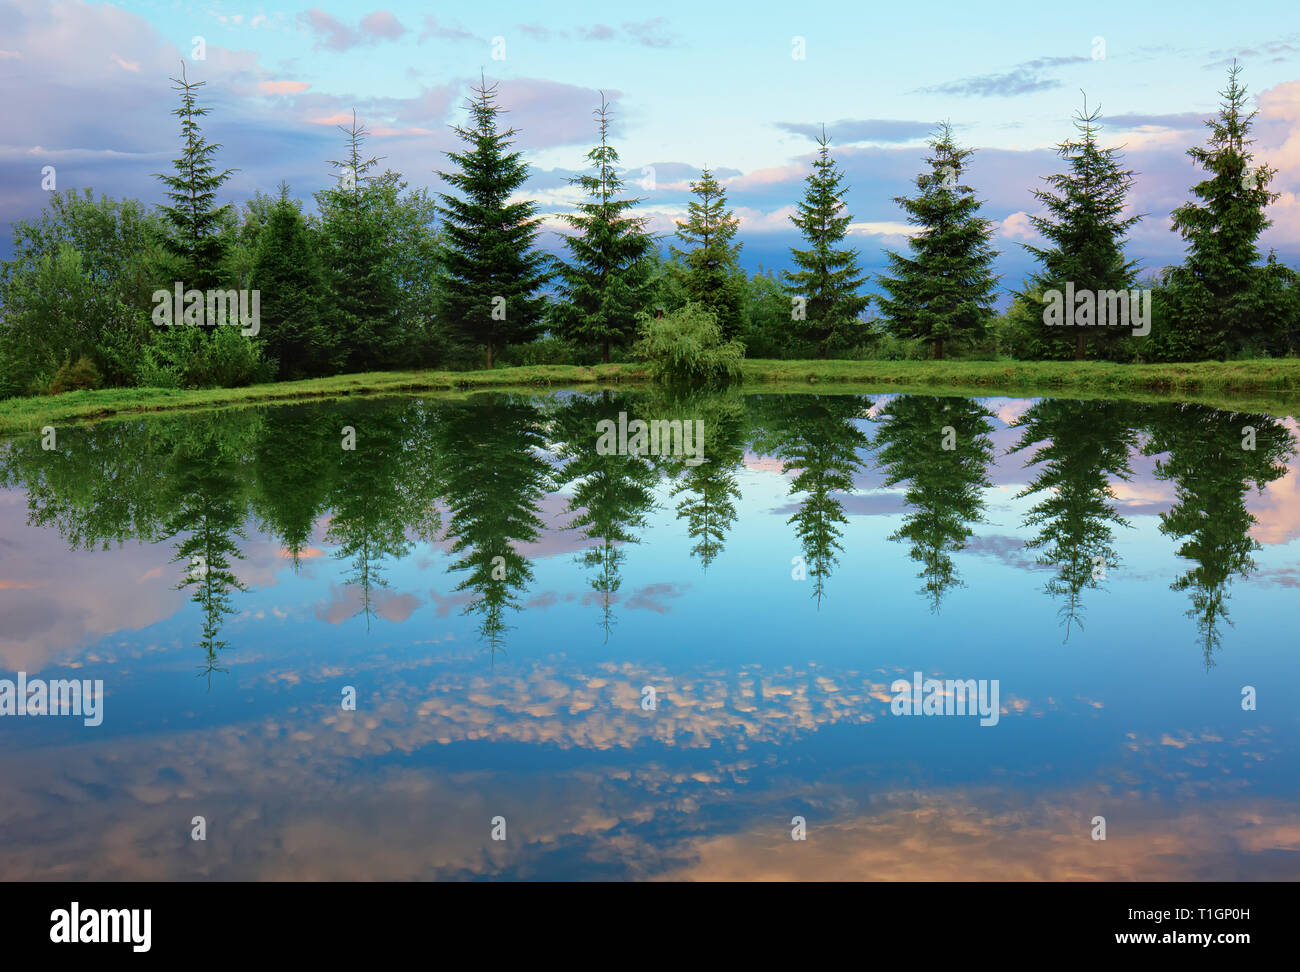 Spruces around mountain lake with reflection in the water after sunset. Beautiful lanscape natural scene. - Stock Image